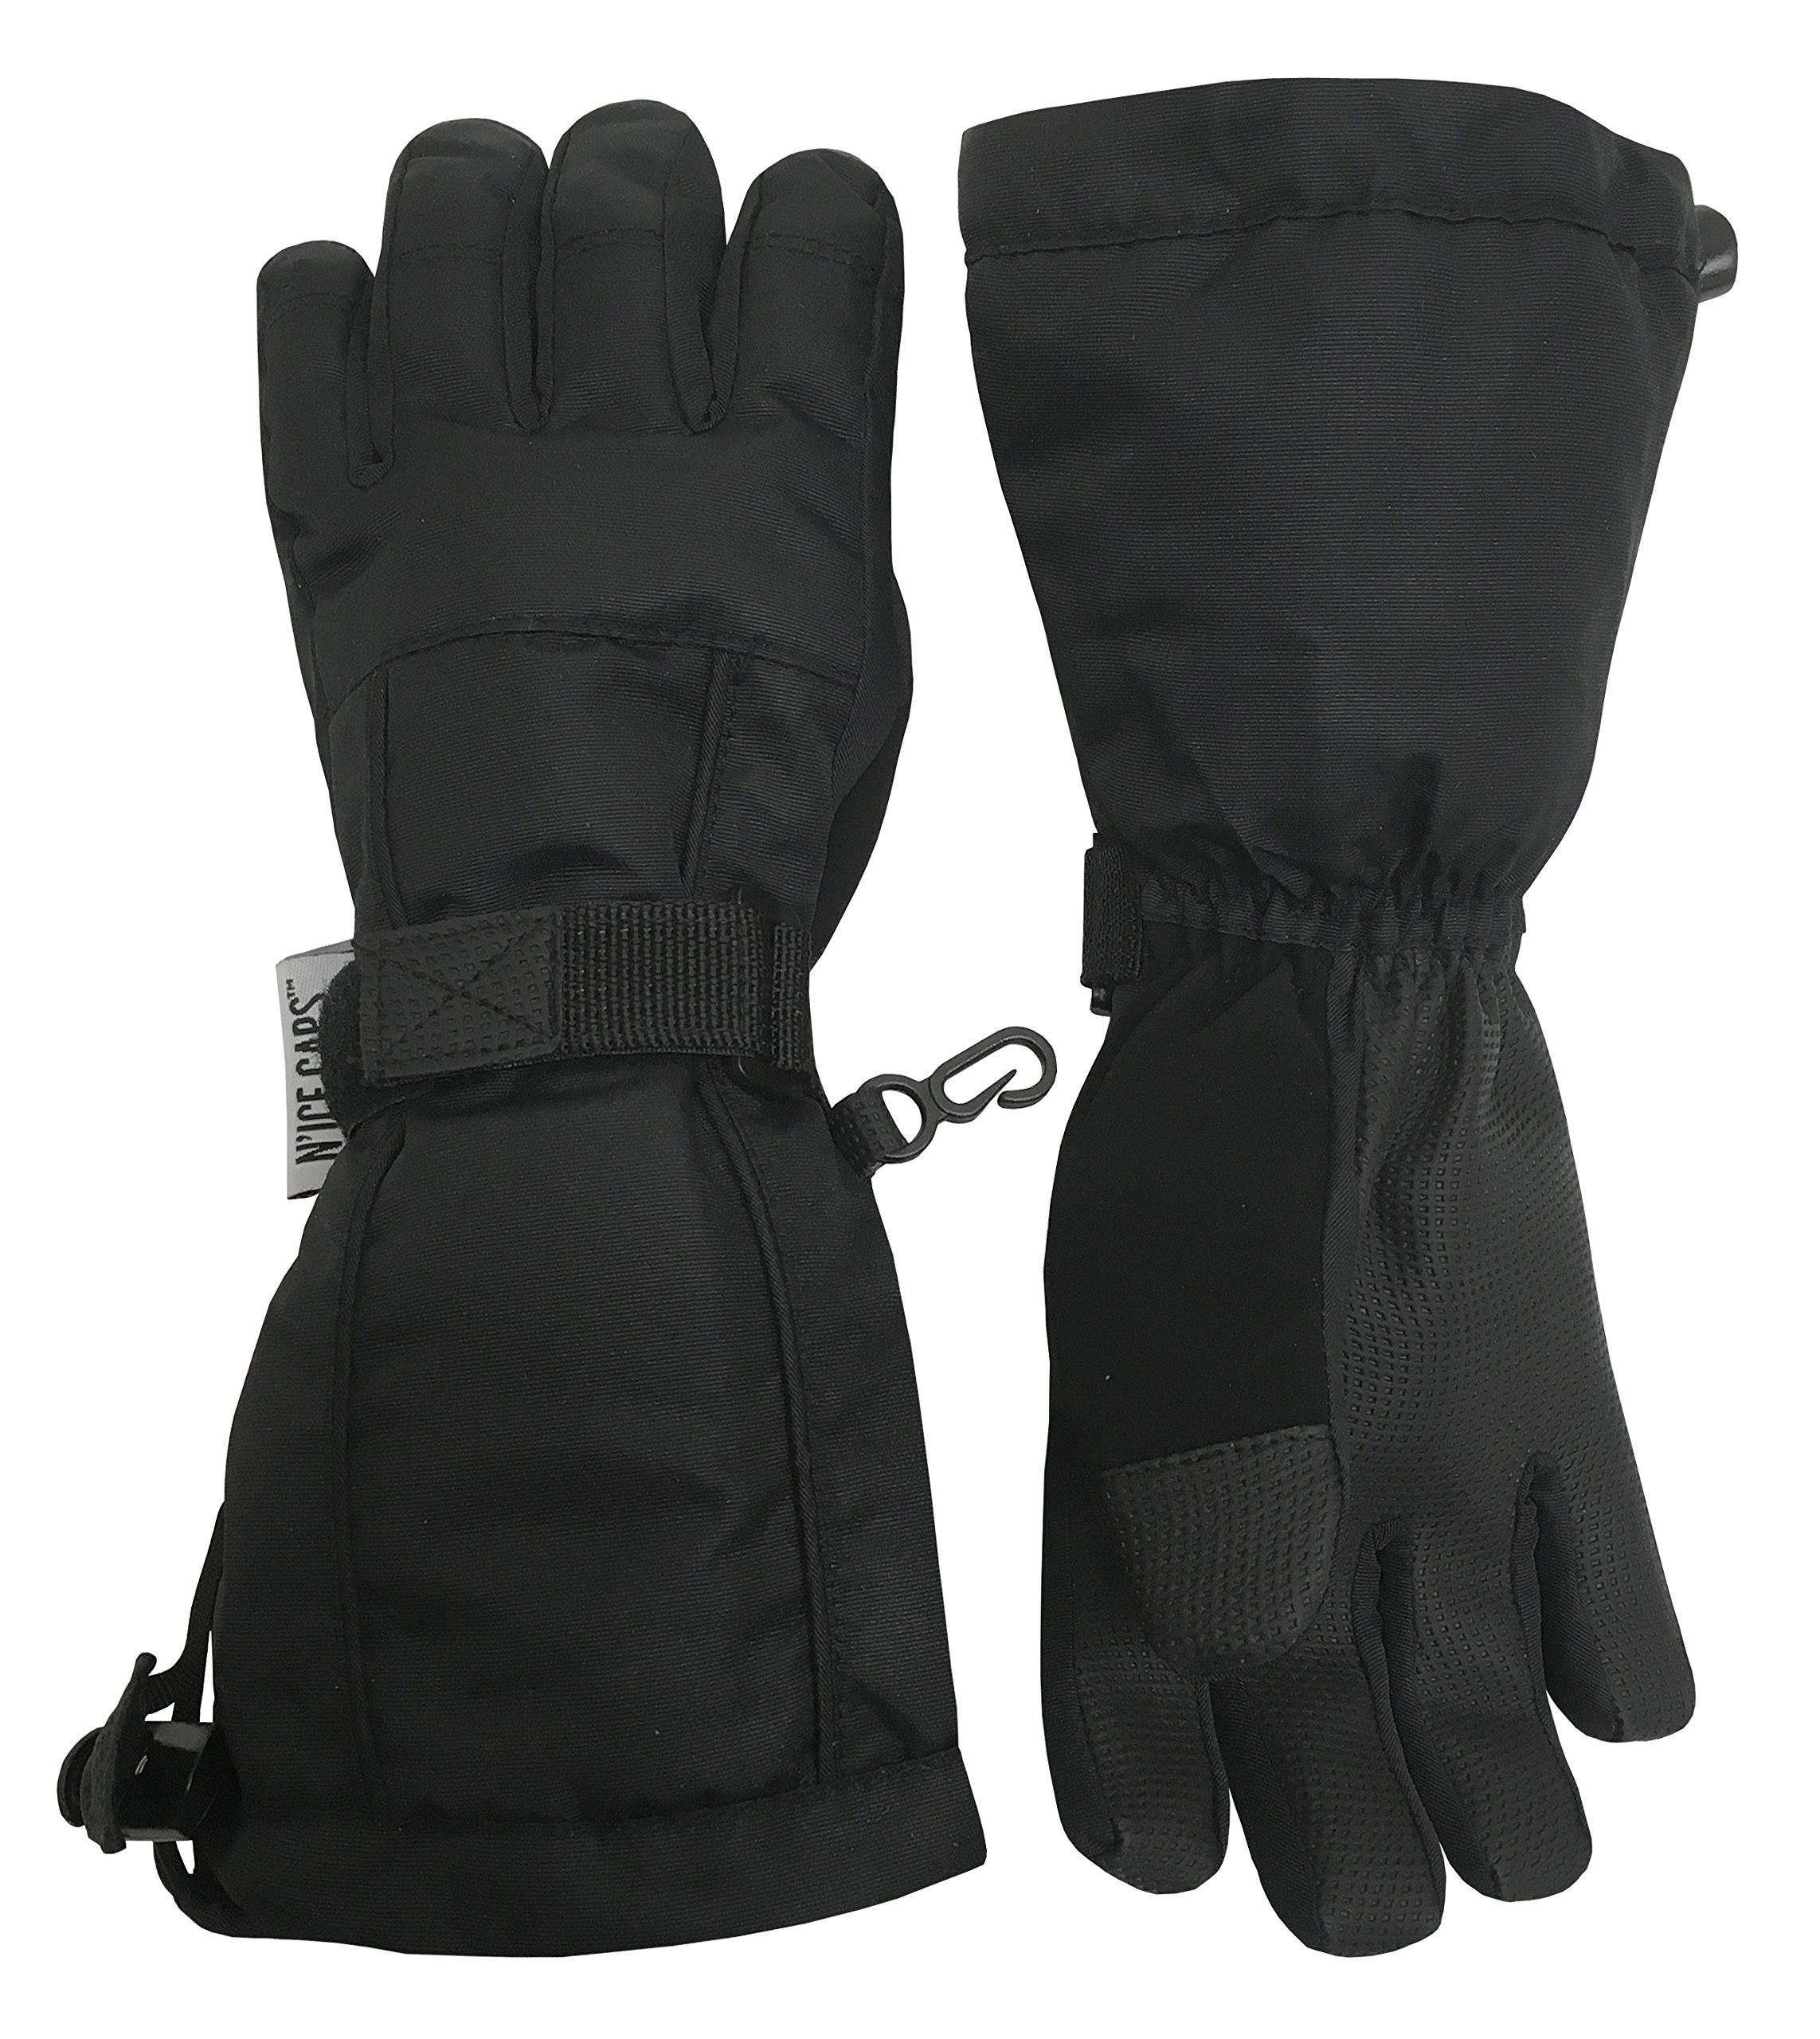 372bc582a N'Ice Caps Kids Extreme Cold Weather 100 Gram Thinsulate Waterproof Ski  Gloves product image